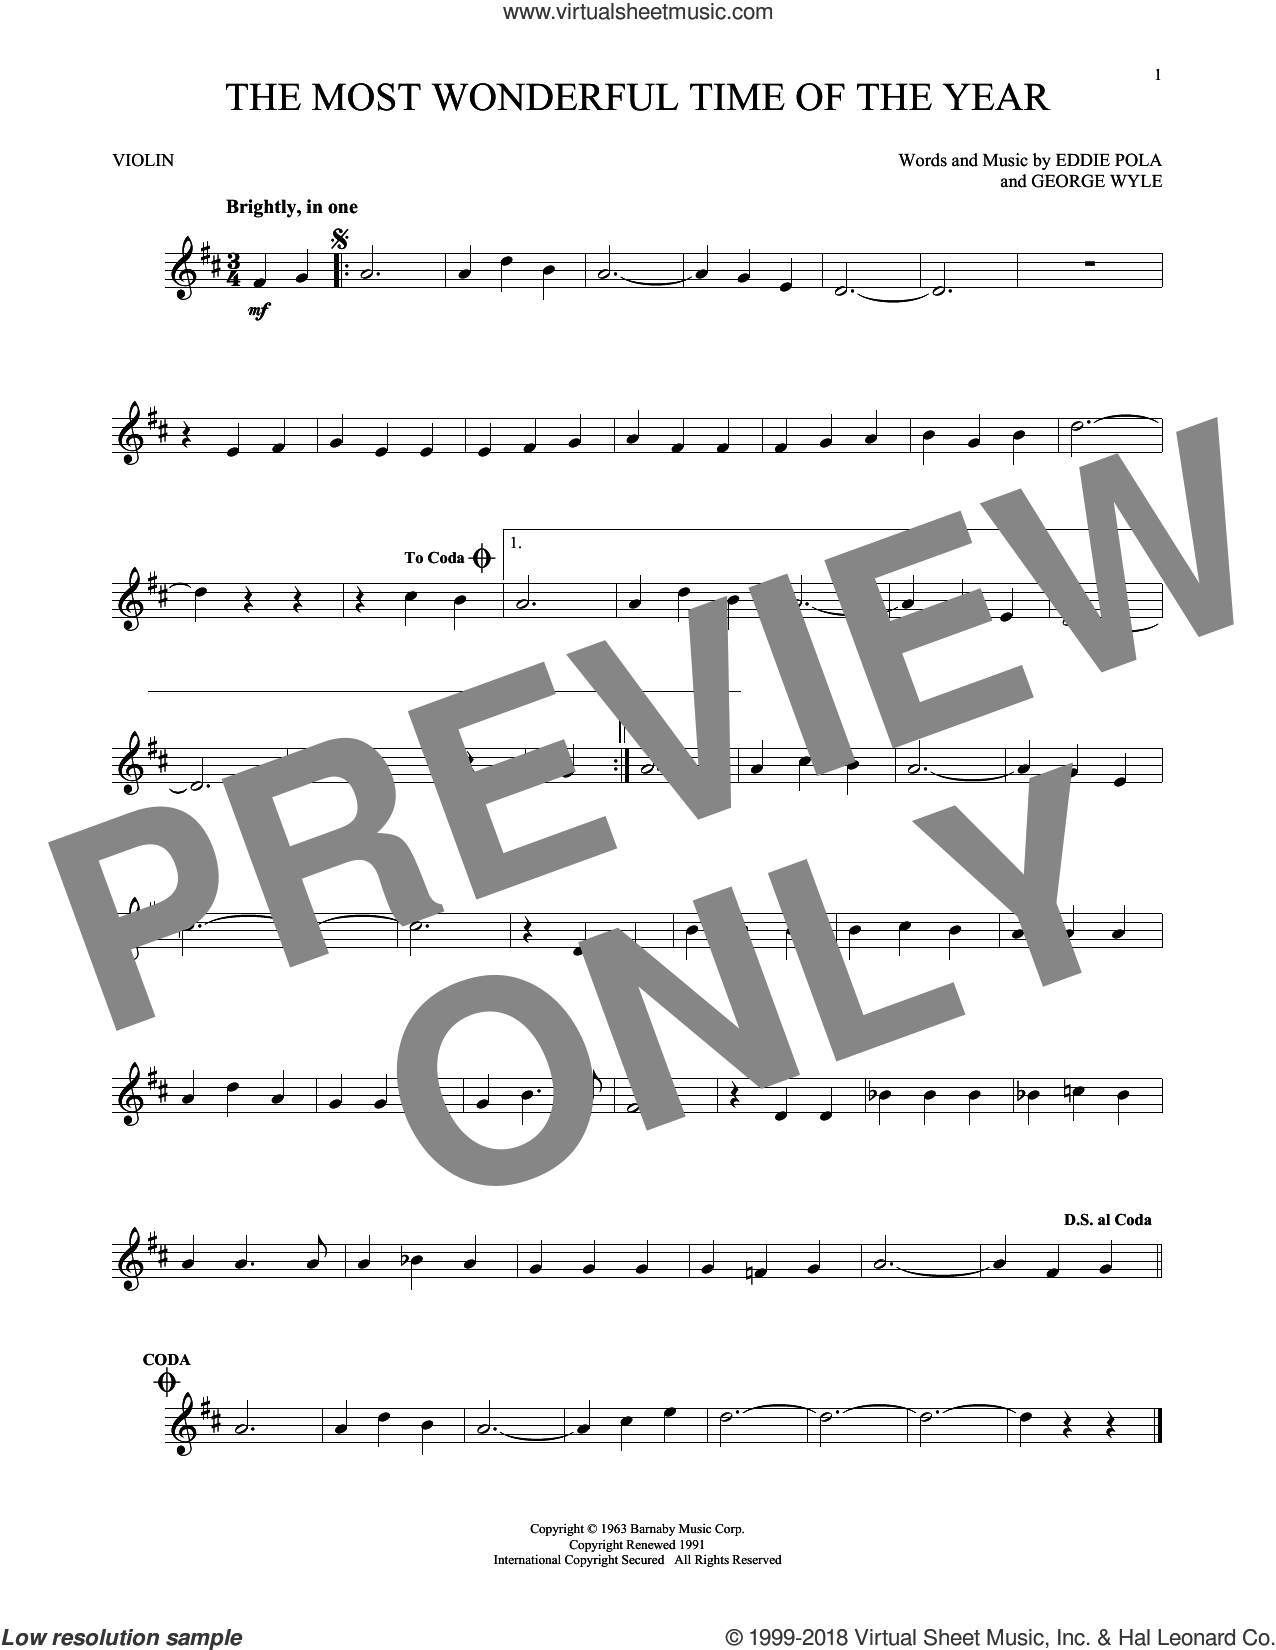 The Most Wonderful Time Of The Year sheet music for violin solo by George Wyle, Andy Williams, Eddie Pola and George Wyle & Eddie Pola, intermediate skill level